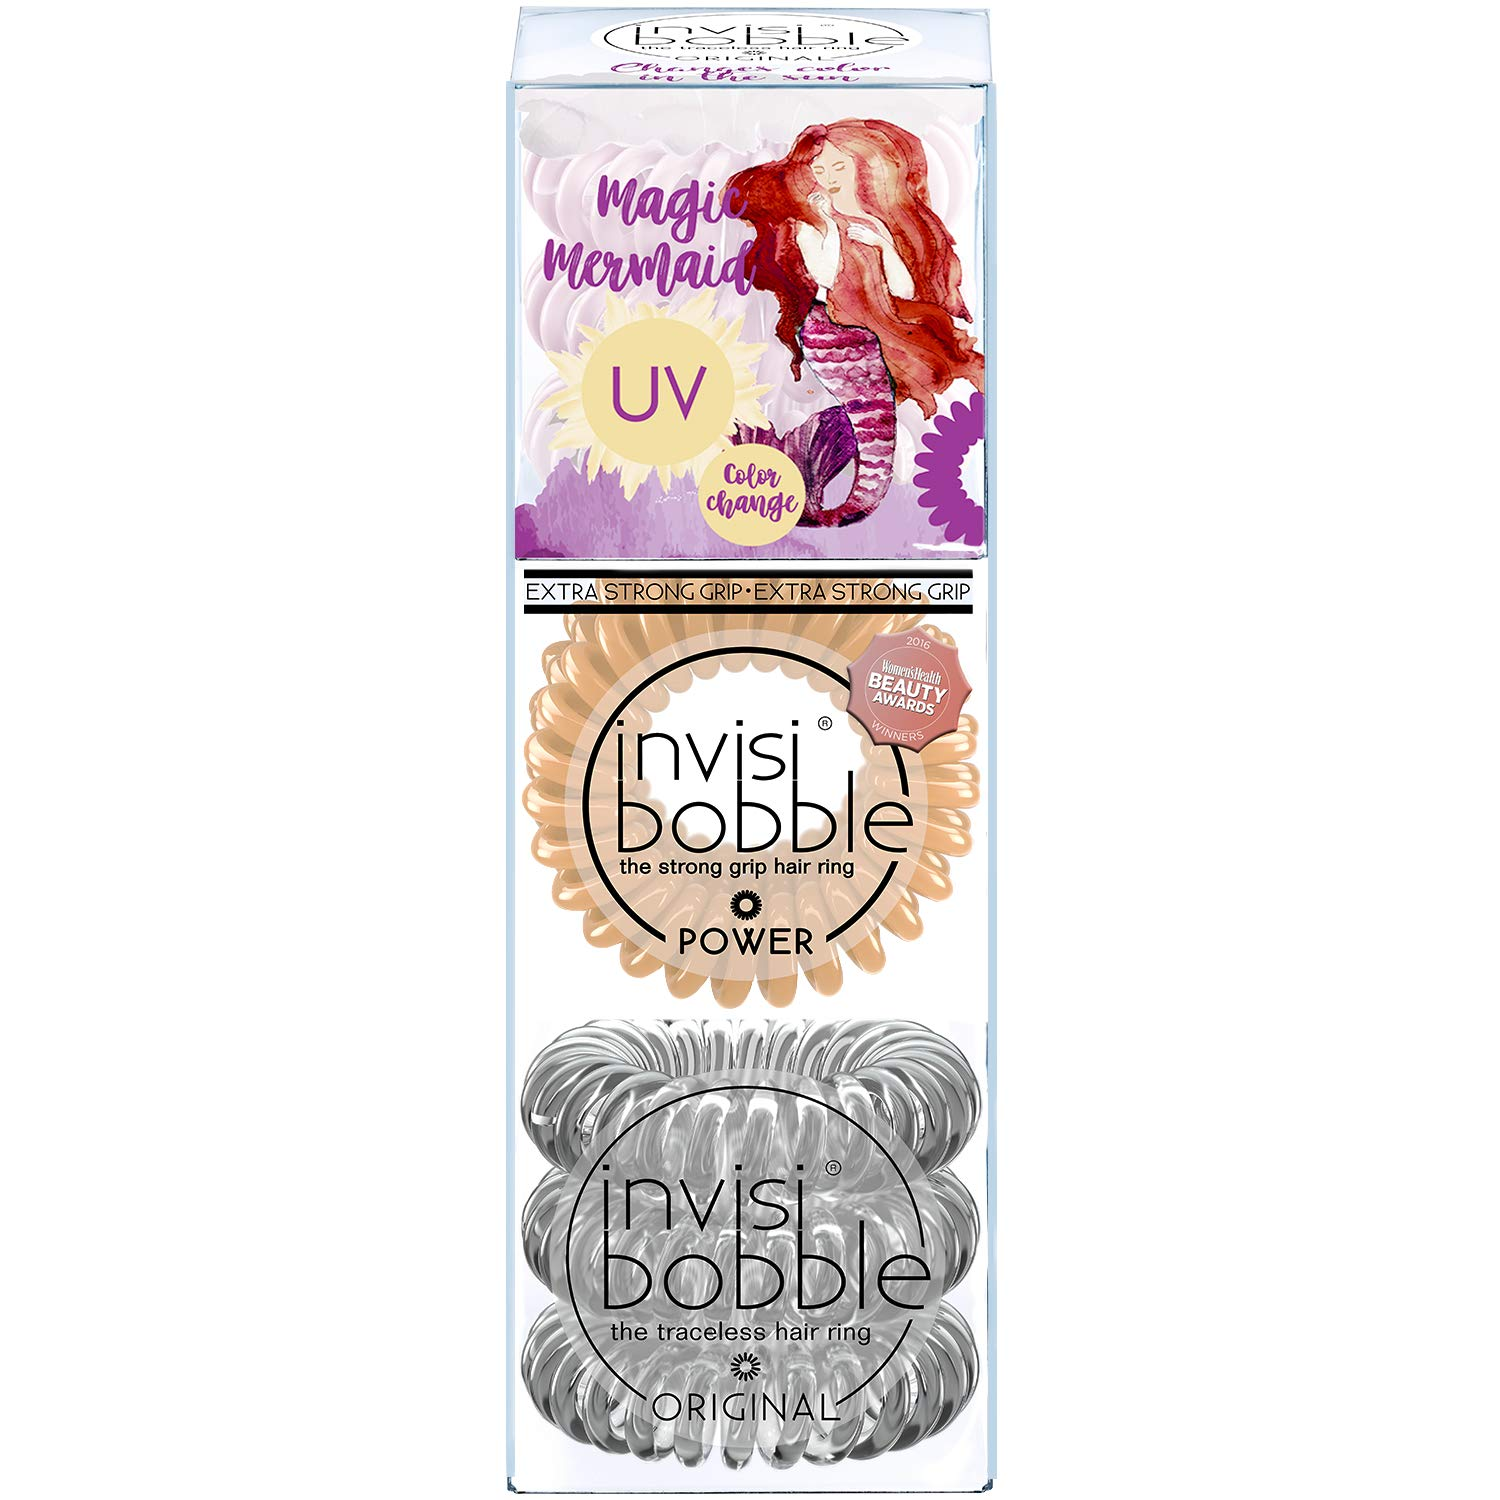 invisibobble Original and Power Traceless Spiral Hair Ties - Pack of 9 - Clear Nude and Purple - Elastic Band with Strong Grip, Non-soaking, Hair Accessories for Women